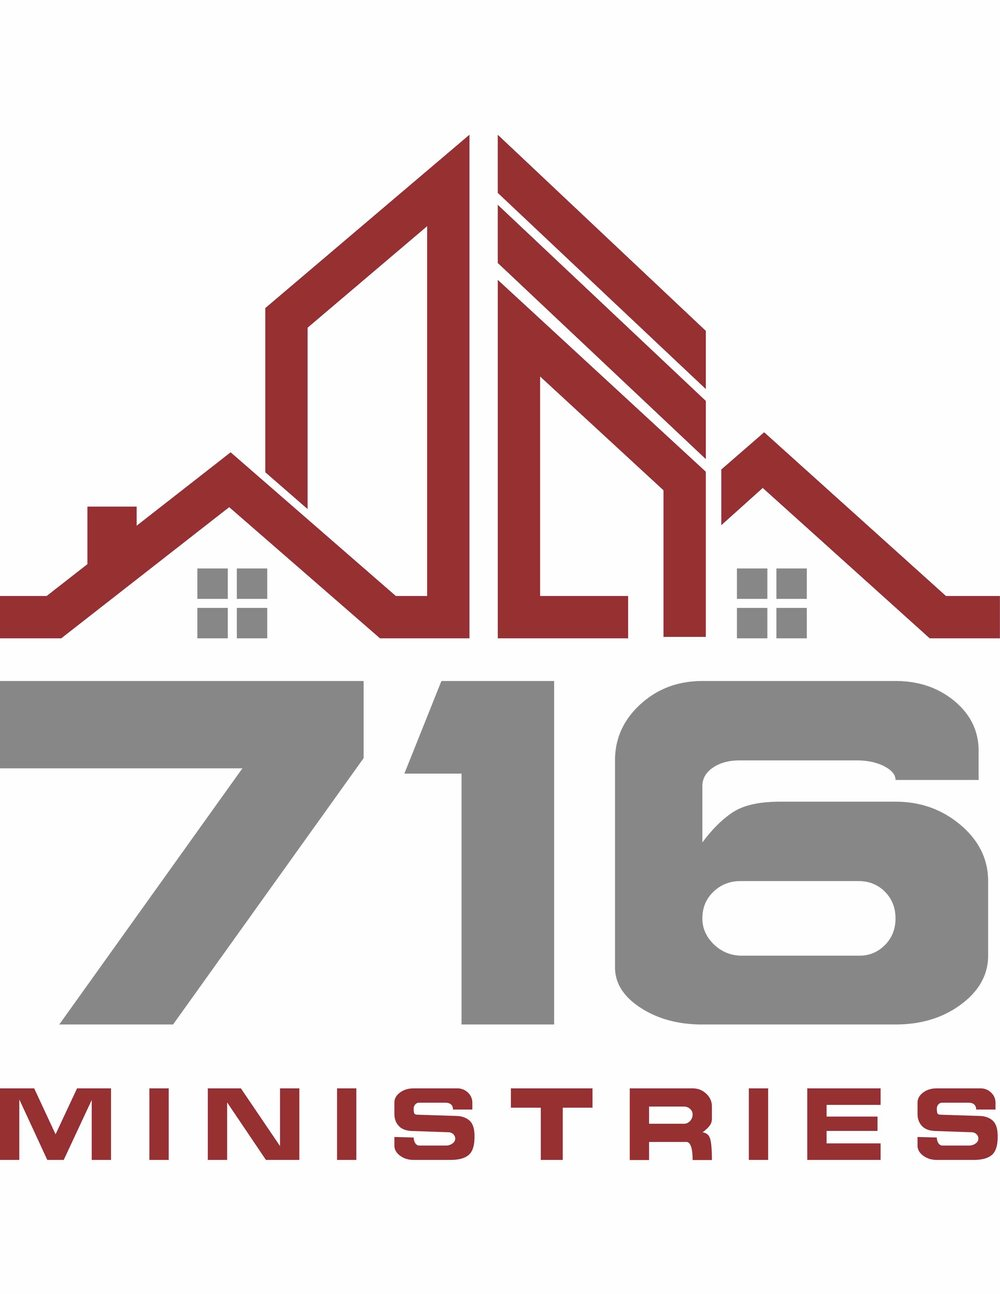 716 Ministries